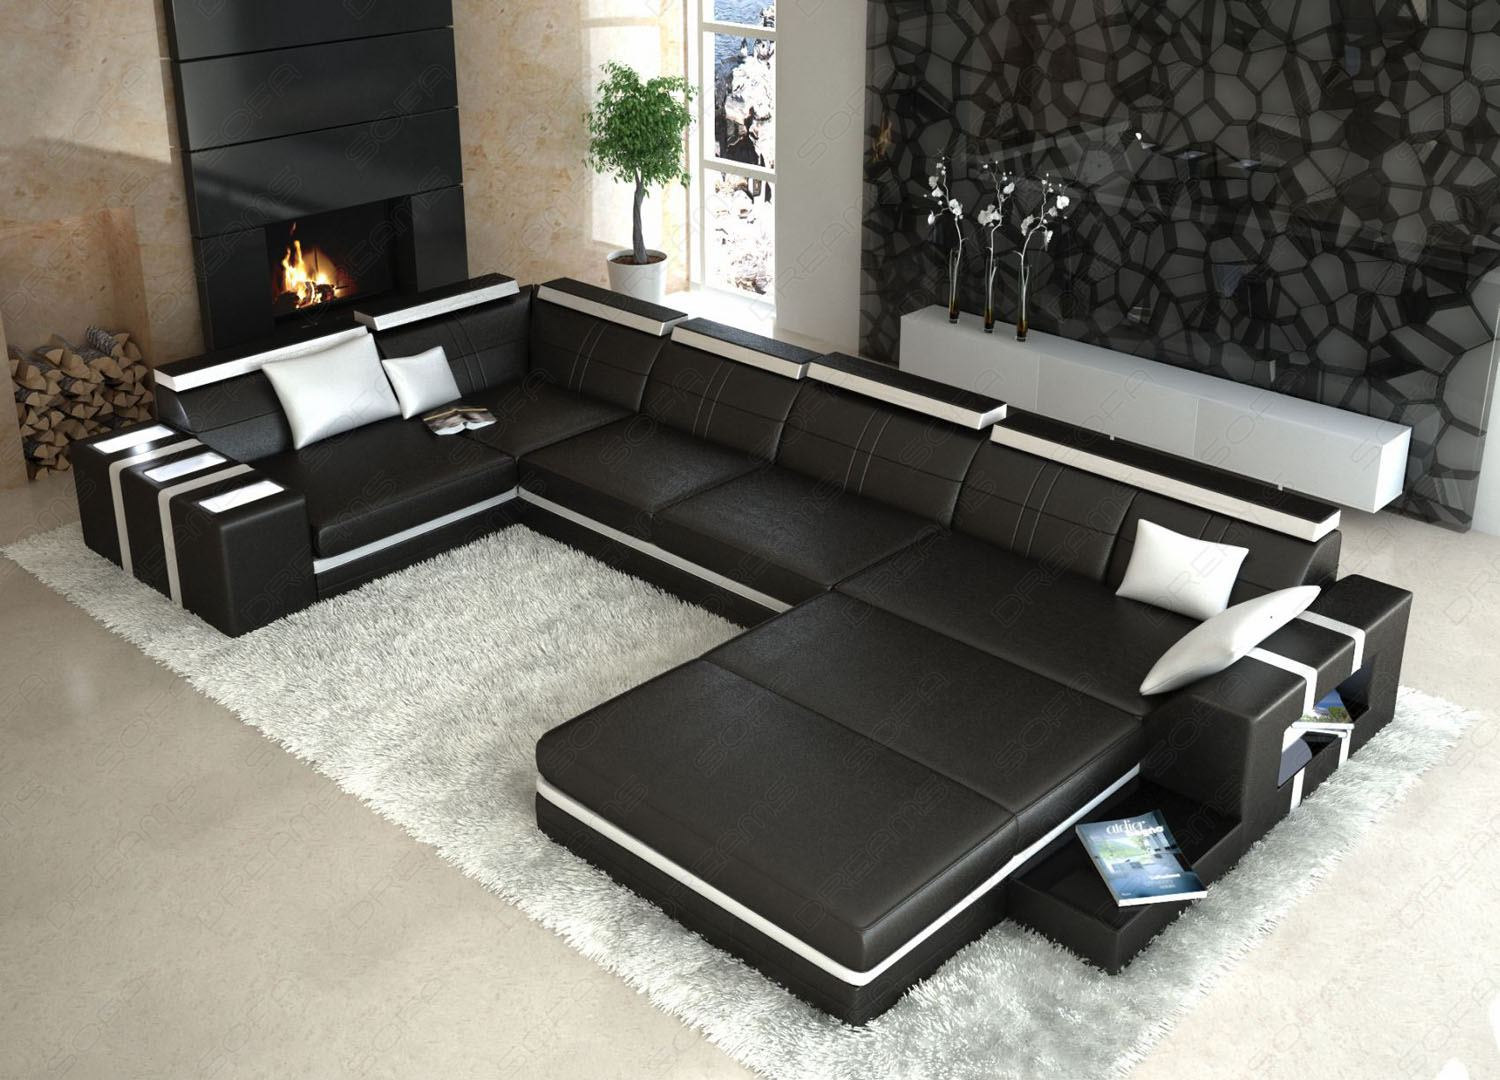 ledersofa asti u form schwarz weiss wohnlandschaft mit licht. Black Bedroom Furniture Sets. Home Design Ideas